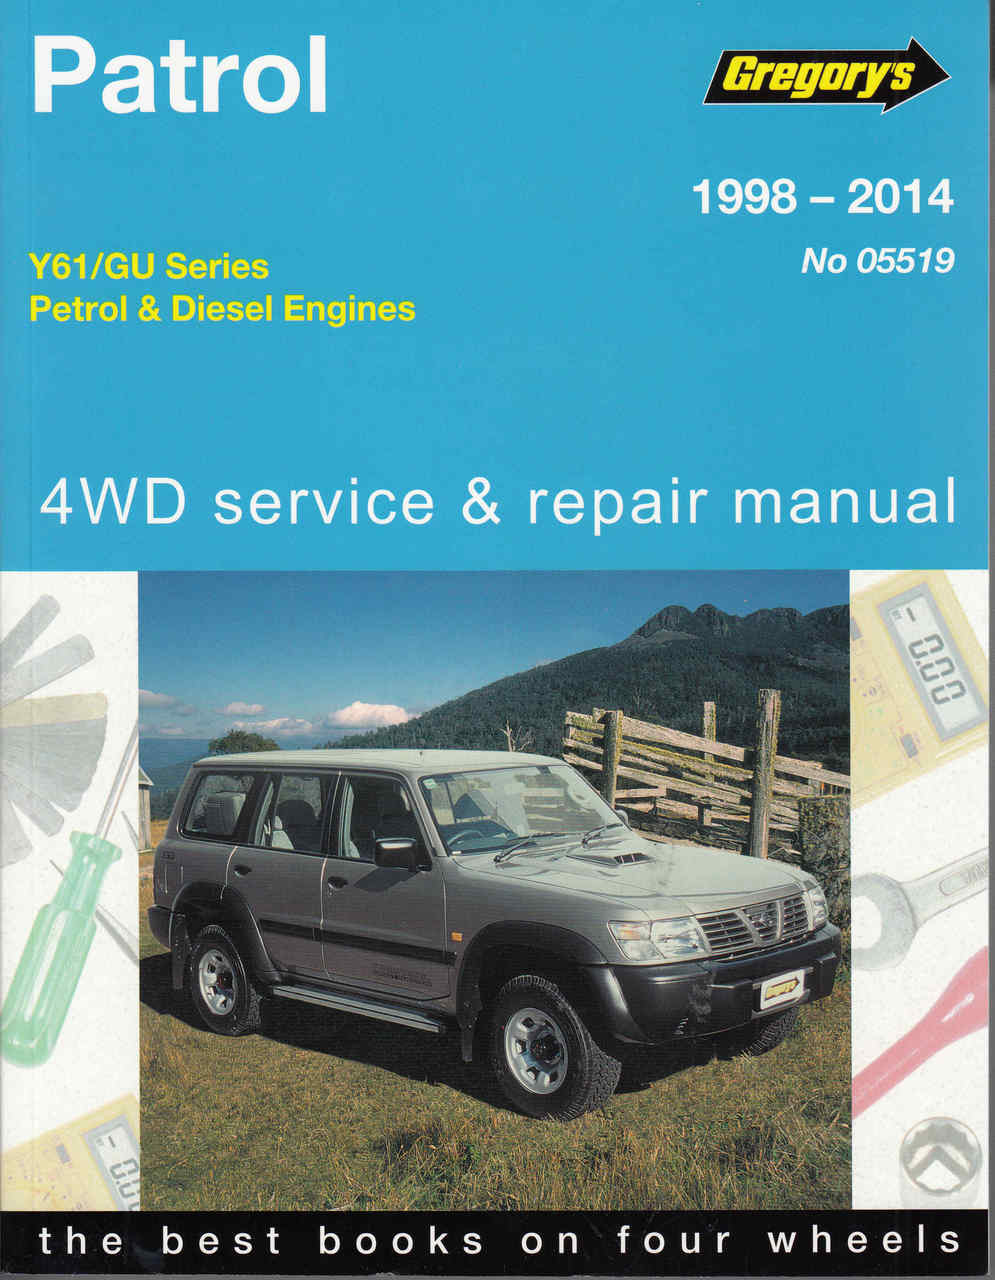 Nissan Patrol Y61 / GU Series Petrol, Diesel 1998 - 2014 Workshop Manual ...